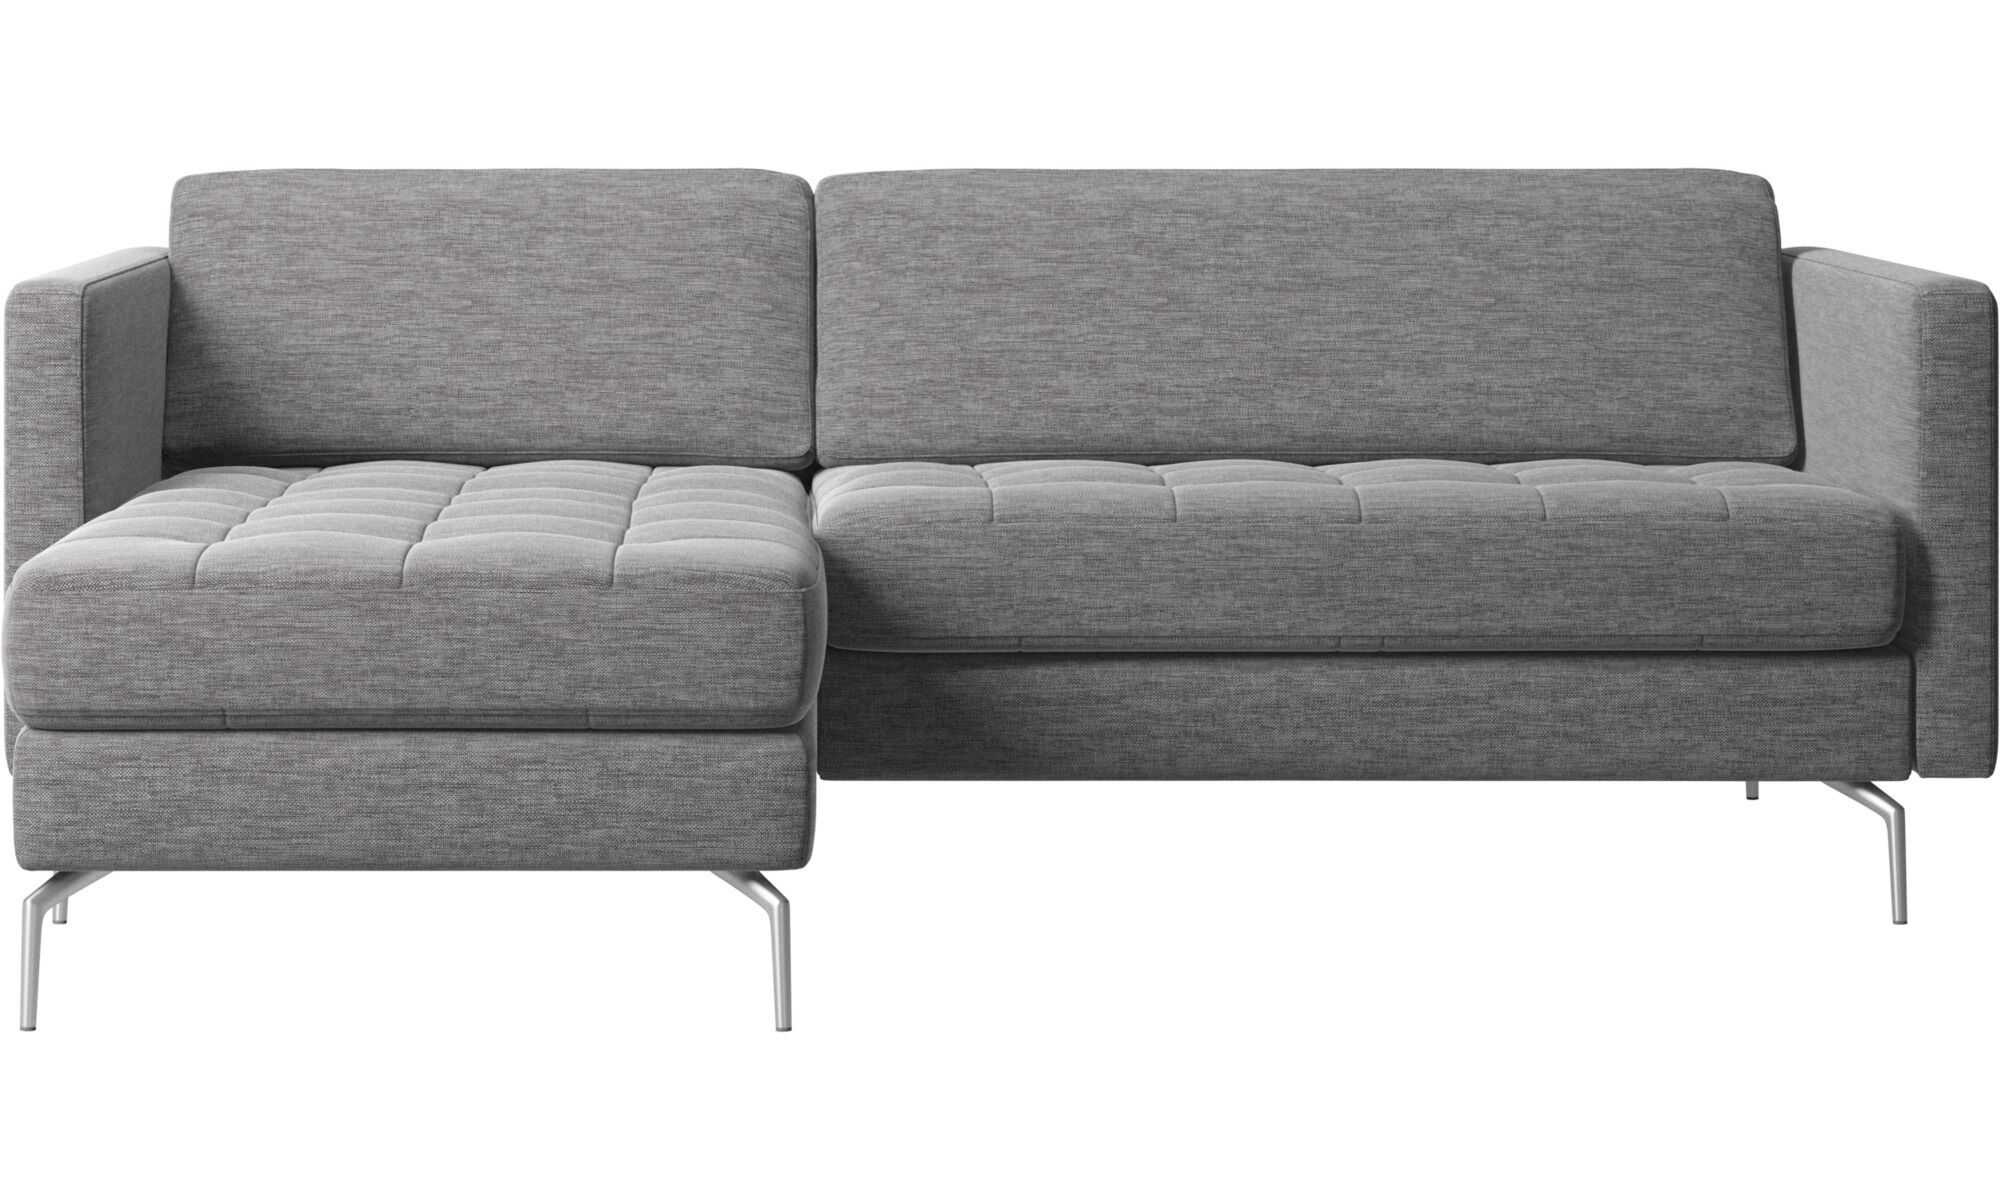 Chaise Lounge Sofas   Osaka Sofa With Resting Unit, Tufted Seat   Gray    Fabric